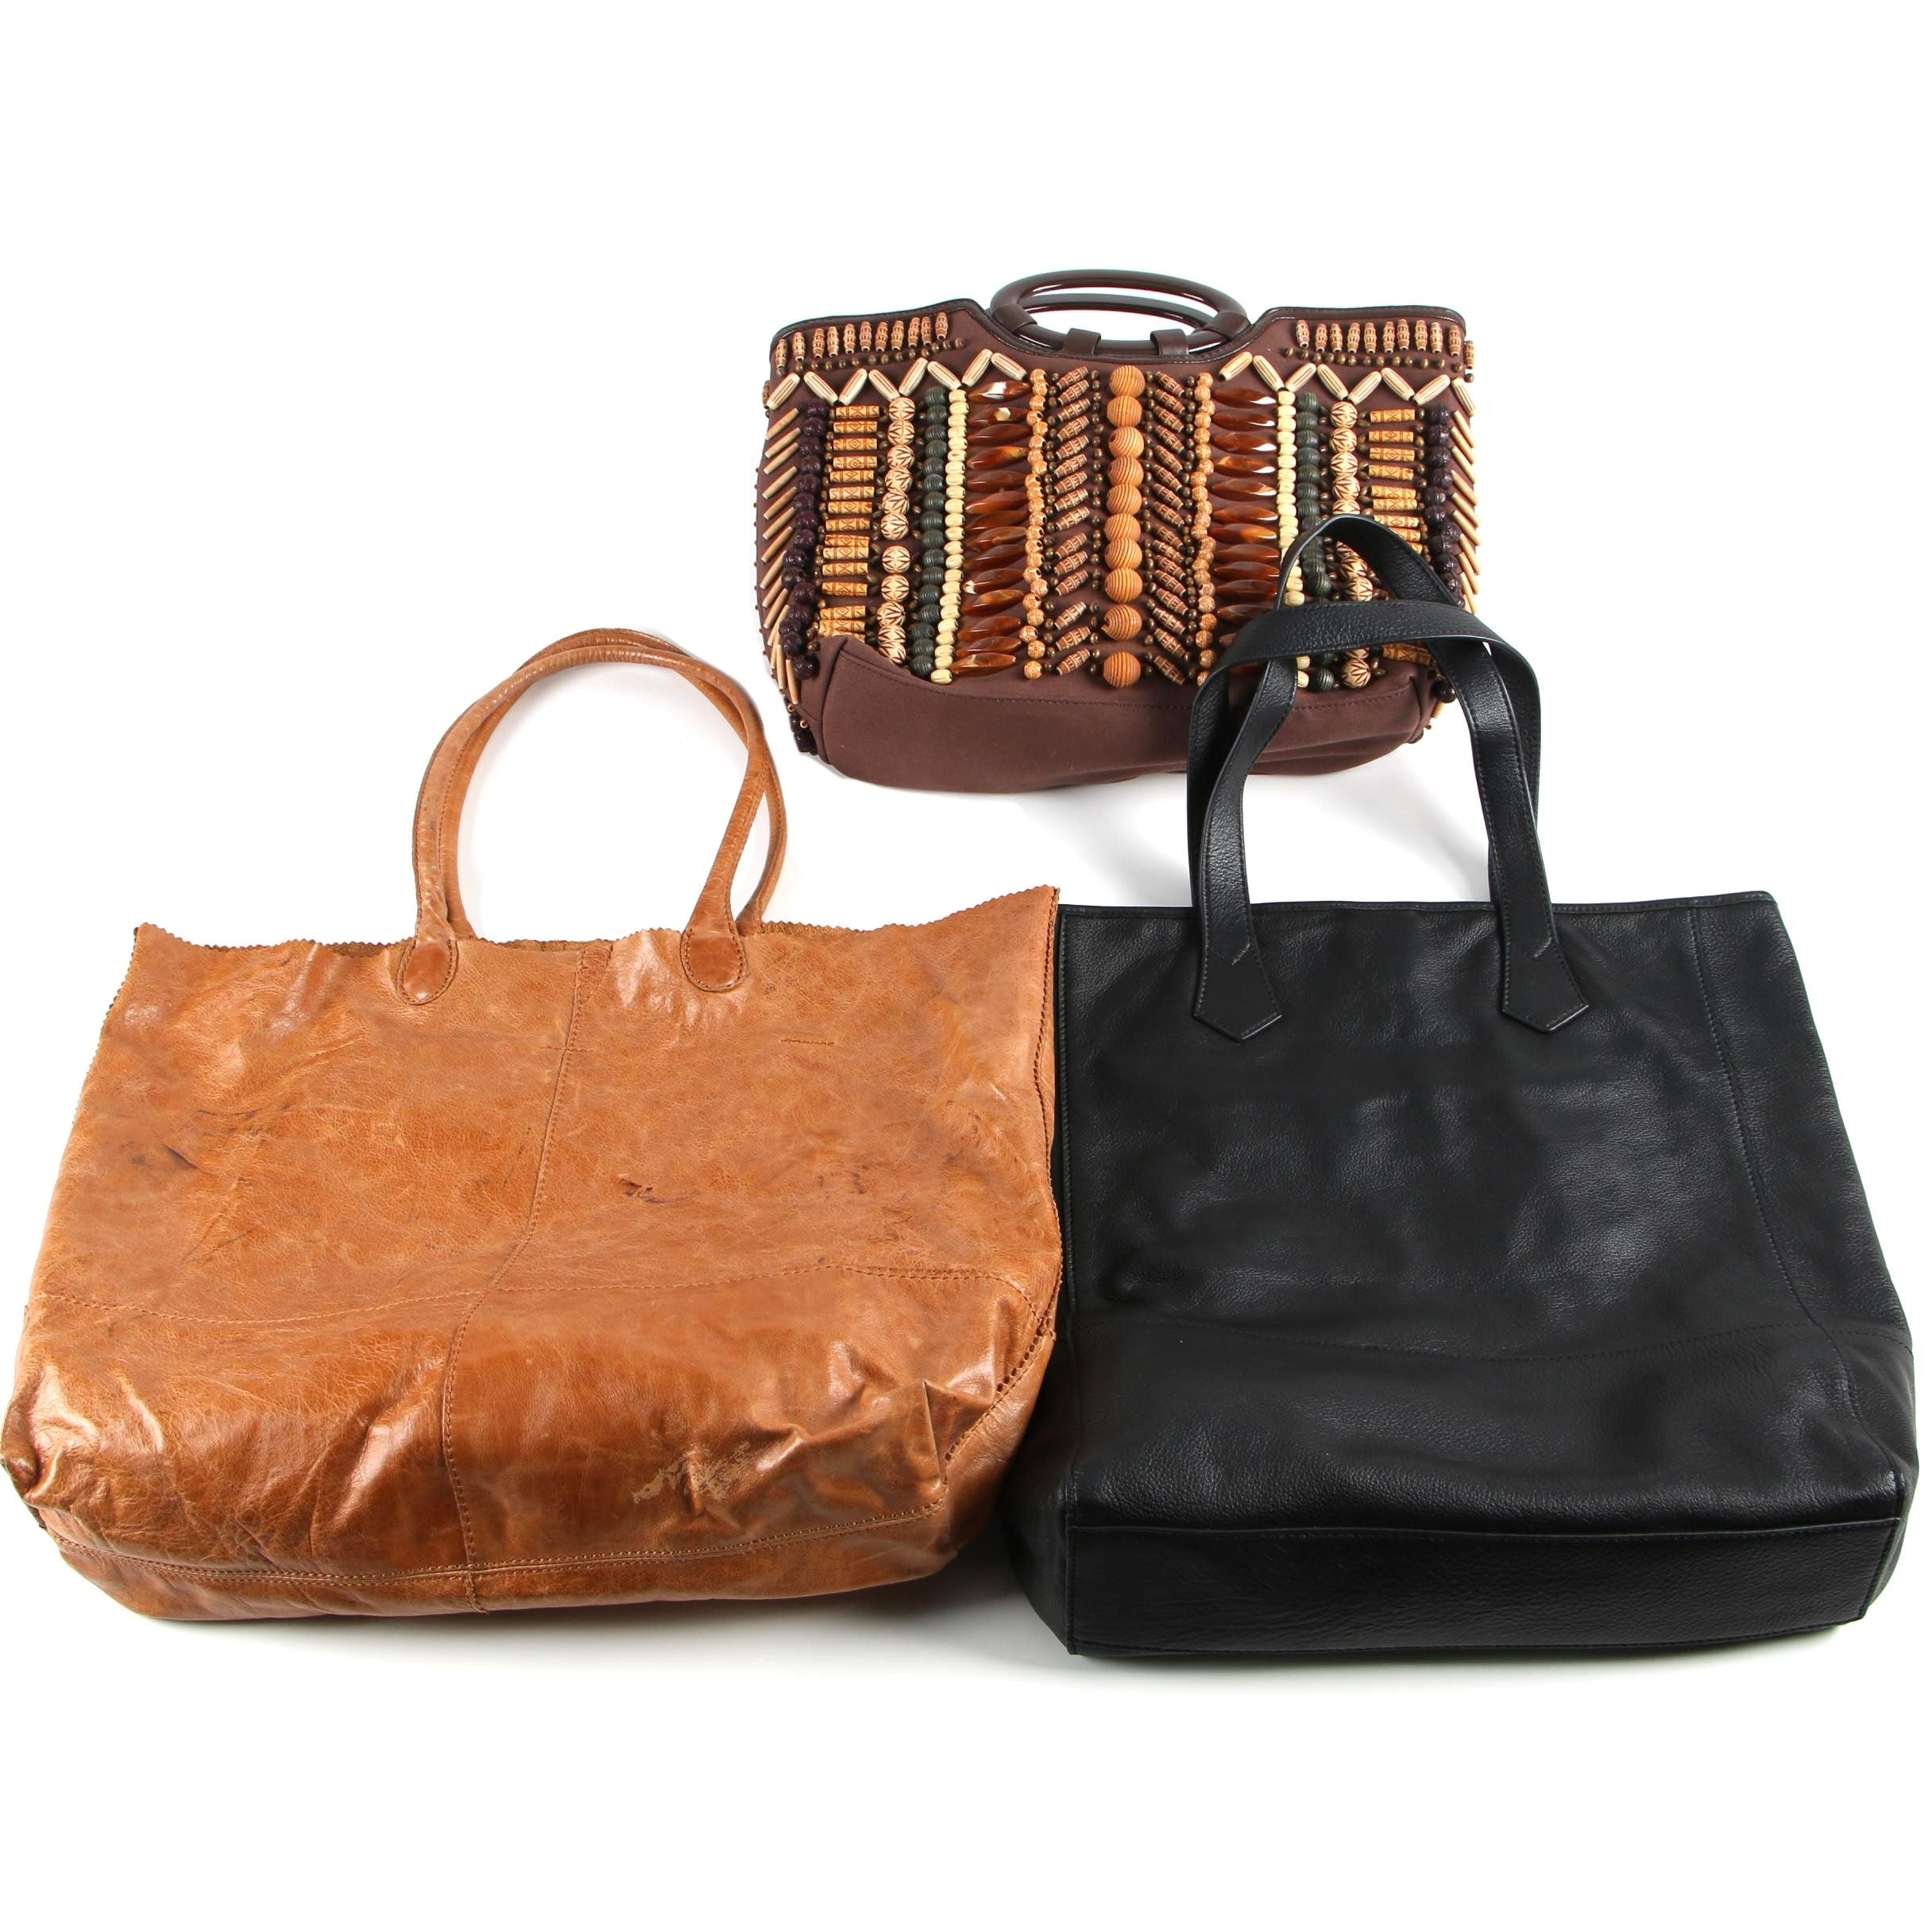 Chico's, Hobo, and Gump's Bags including Leather